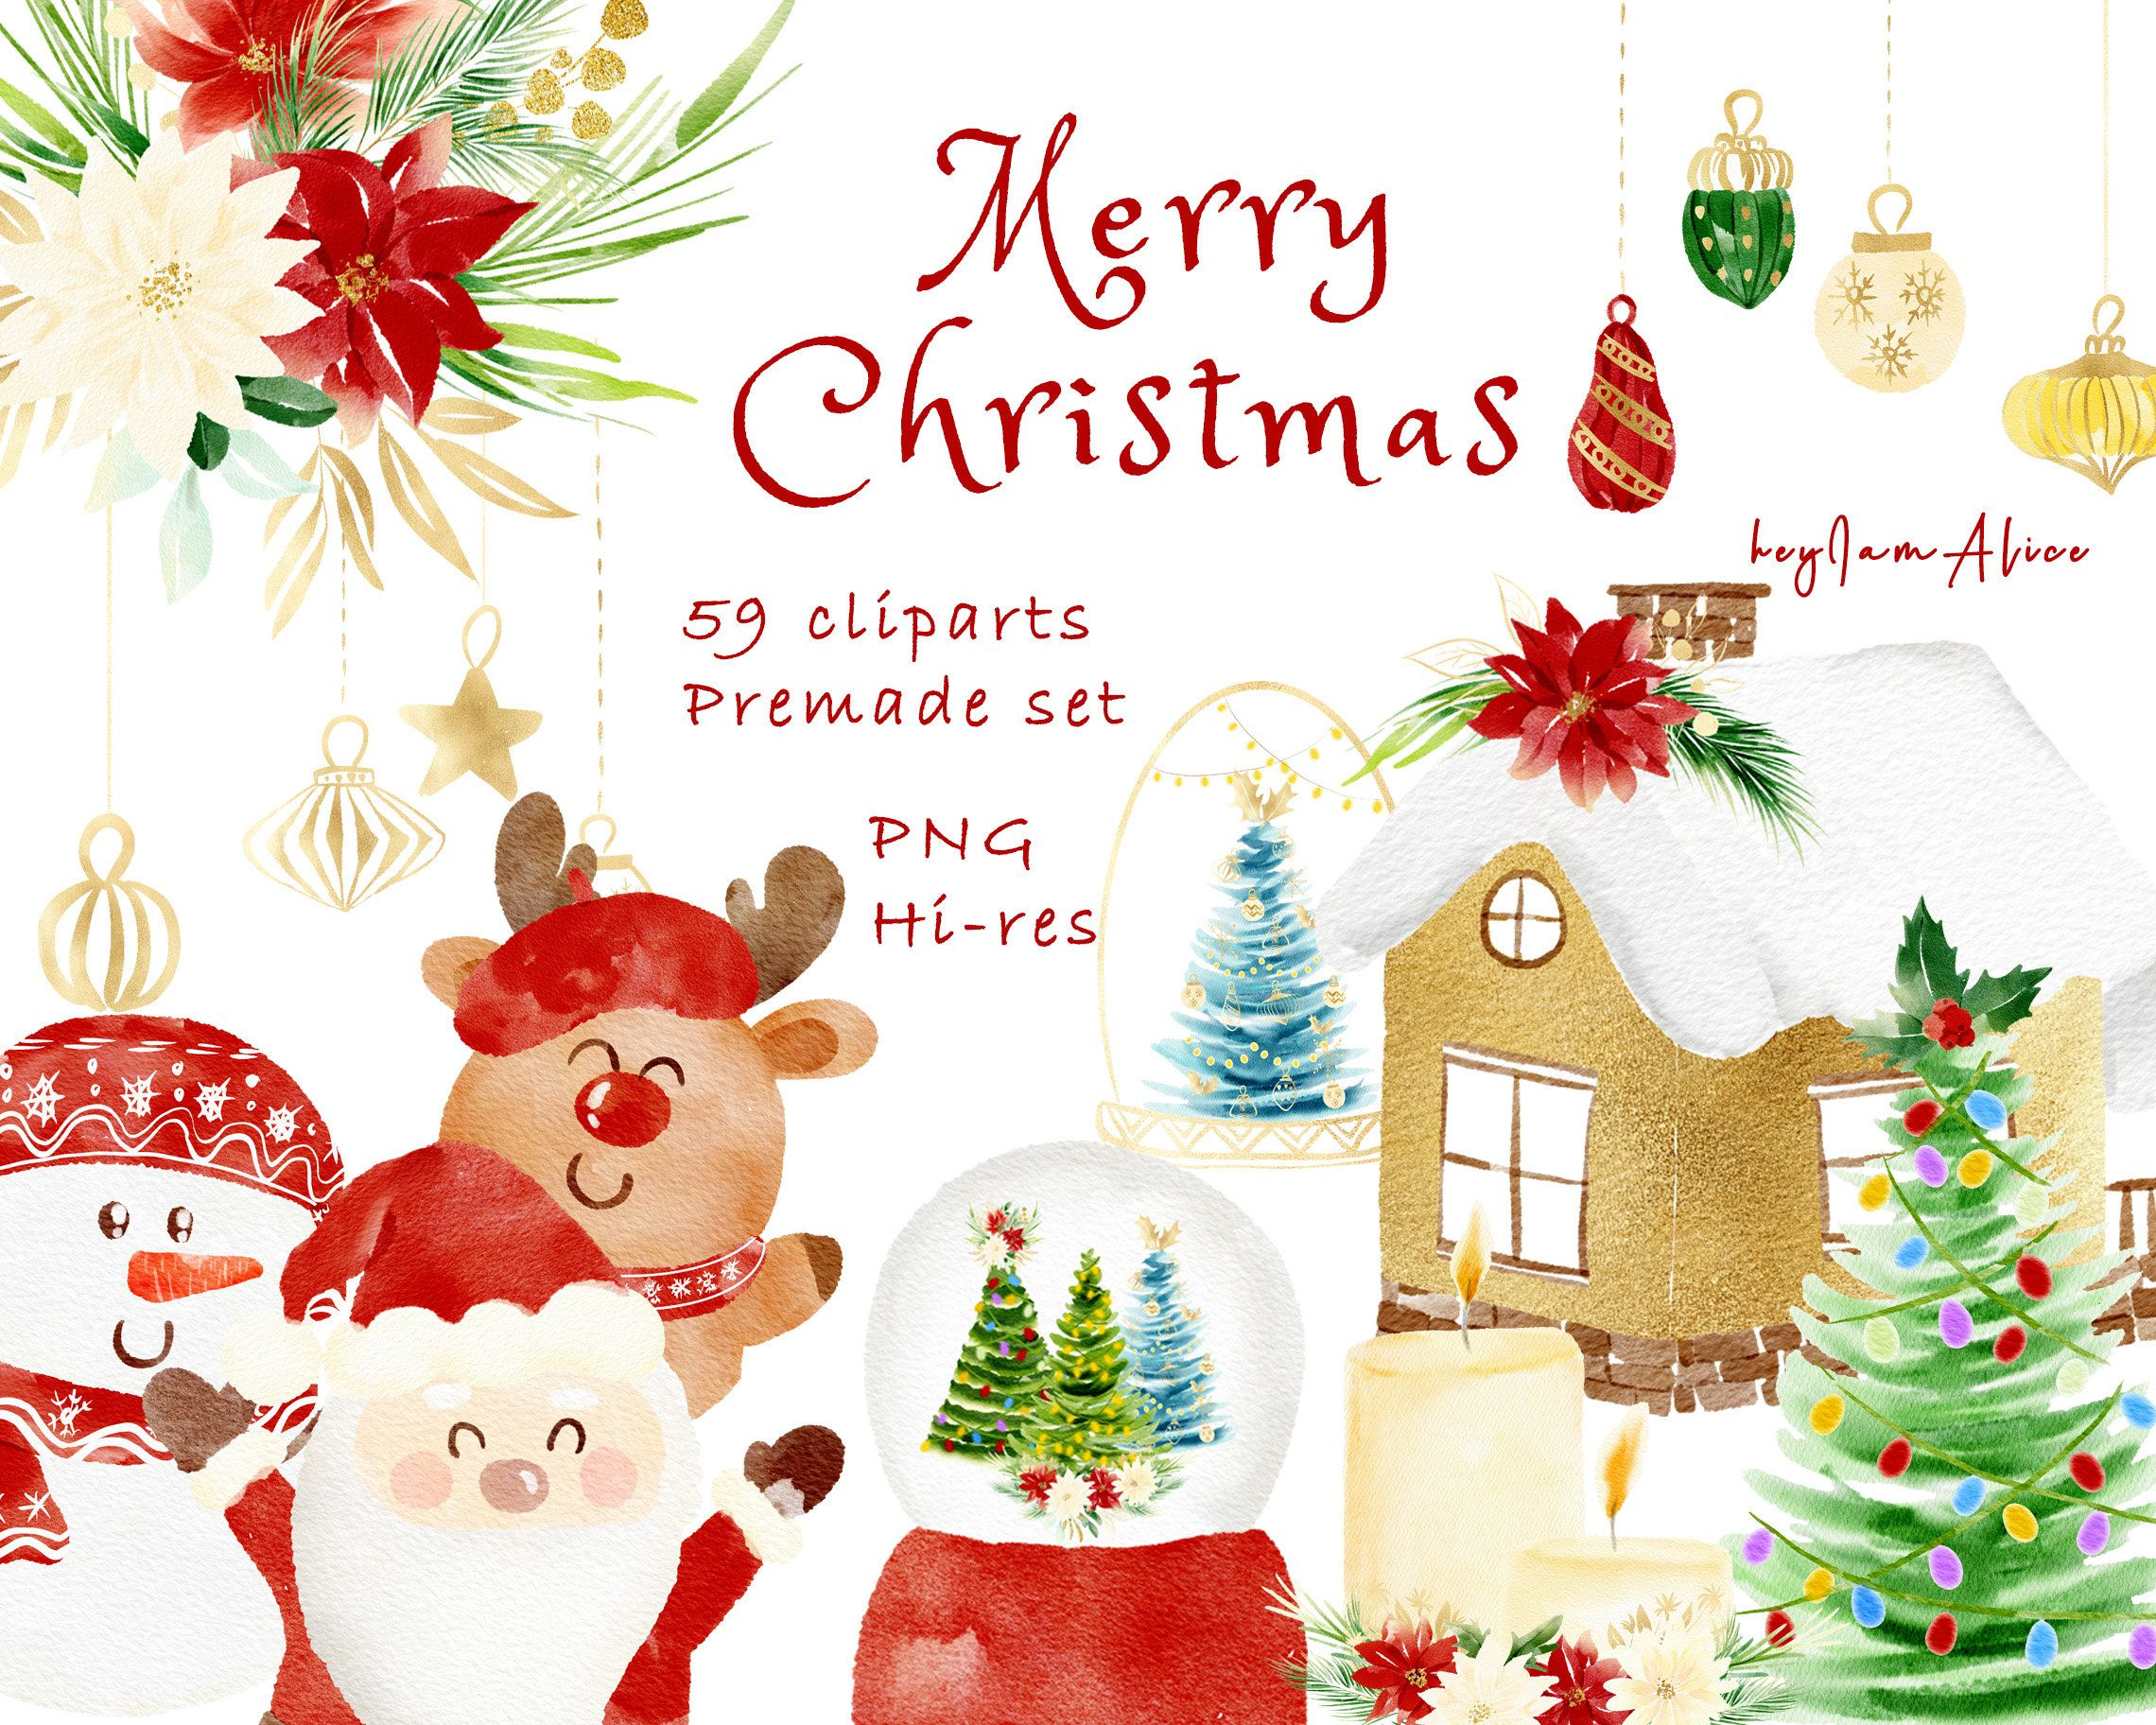 Christmas Clipart Free Commercial Use Watercolor Merry X Mas Clipart Santa Claus Clipart Holiday Png Festive Noel Png Christmas Tree In 2020 Christmas Clipart Christmas Clipart Free Merry